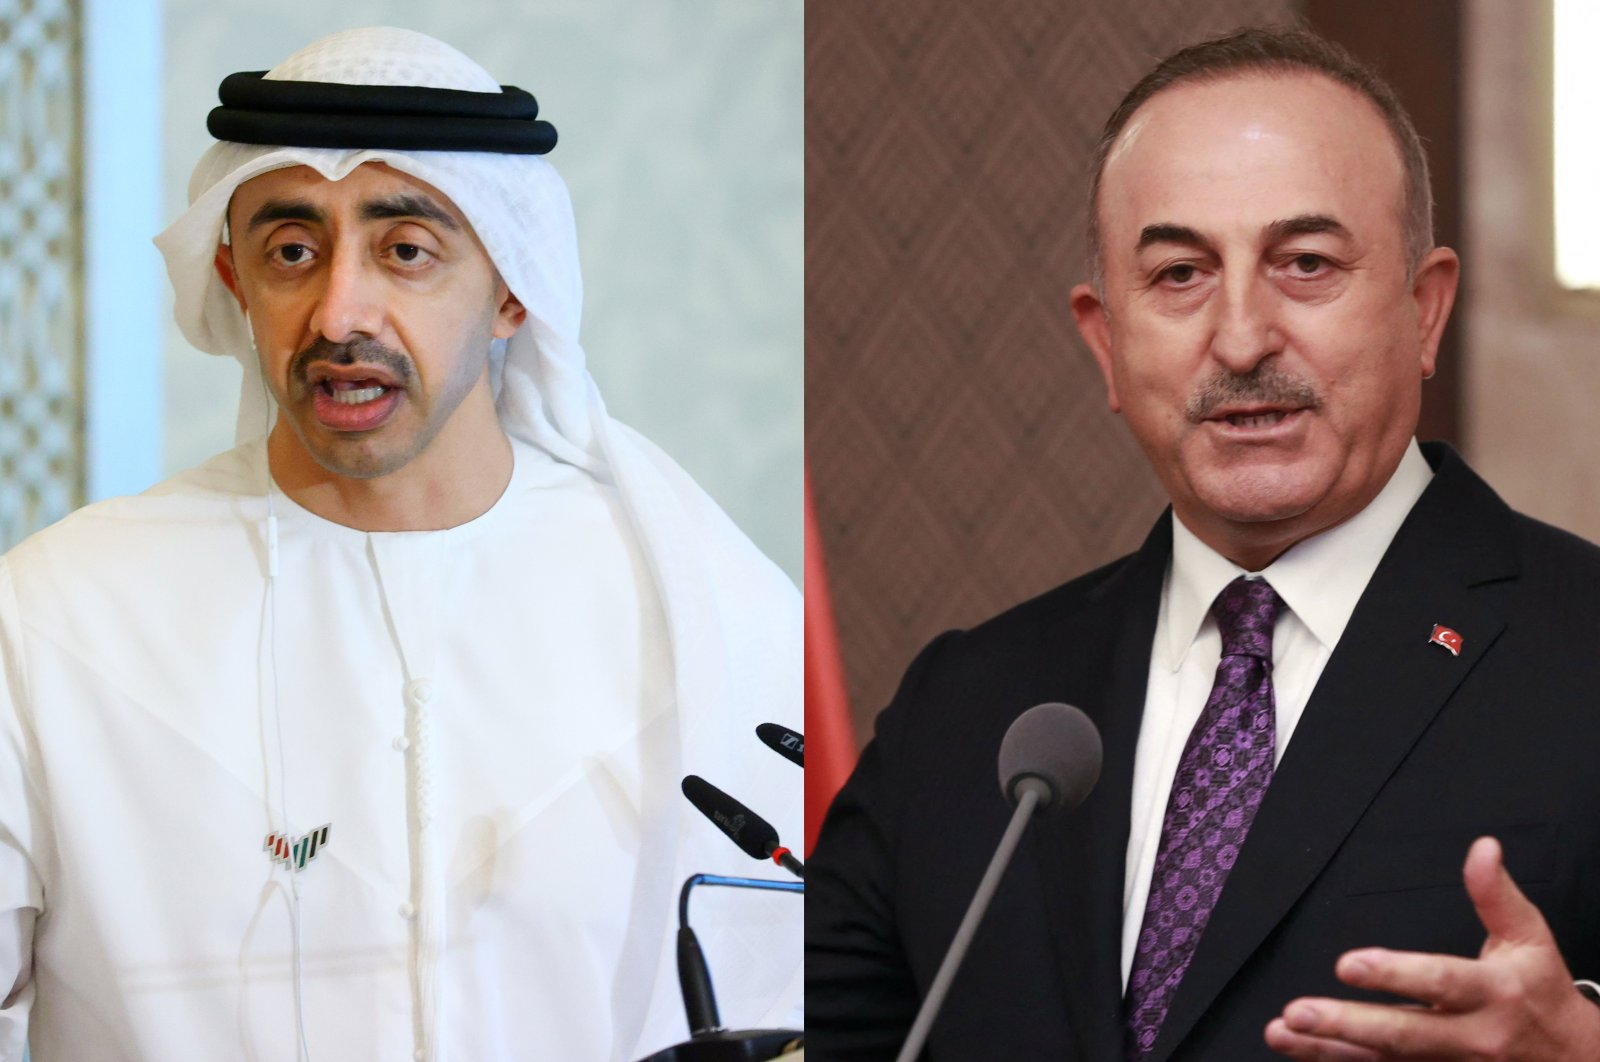 Foreign Minister Mevlüt Çavuşoğlu (R) and his UAE counterpart Abdullah bin Zayed bin Sultan Al Nahyan are seen in this combination photo. (Photos by AFP & Reuters)